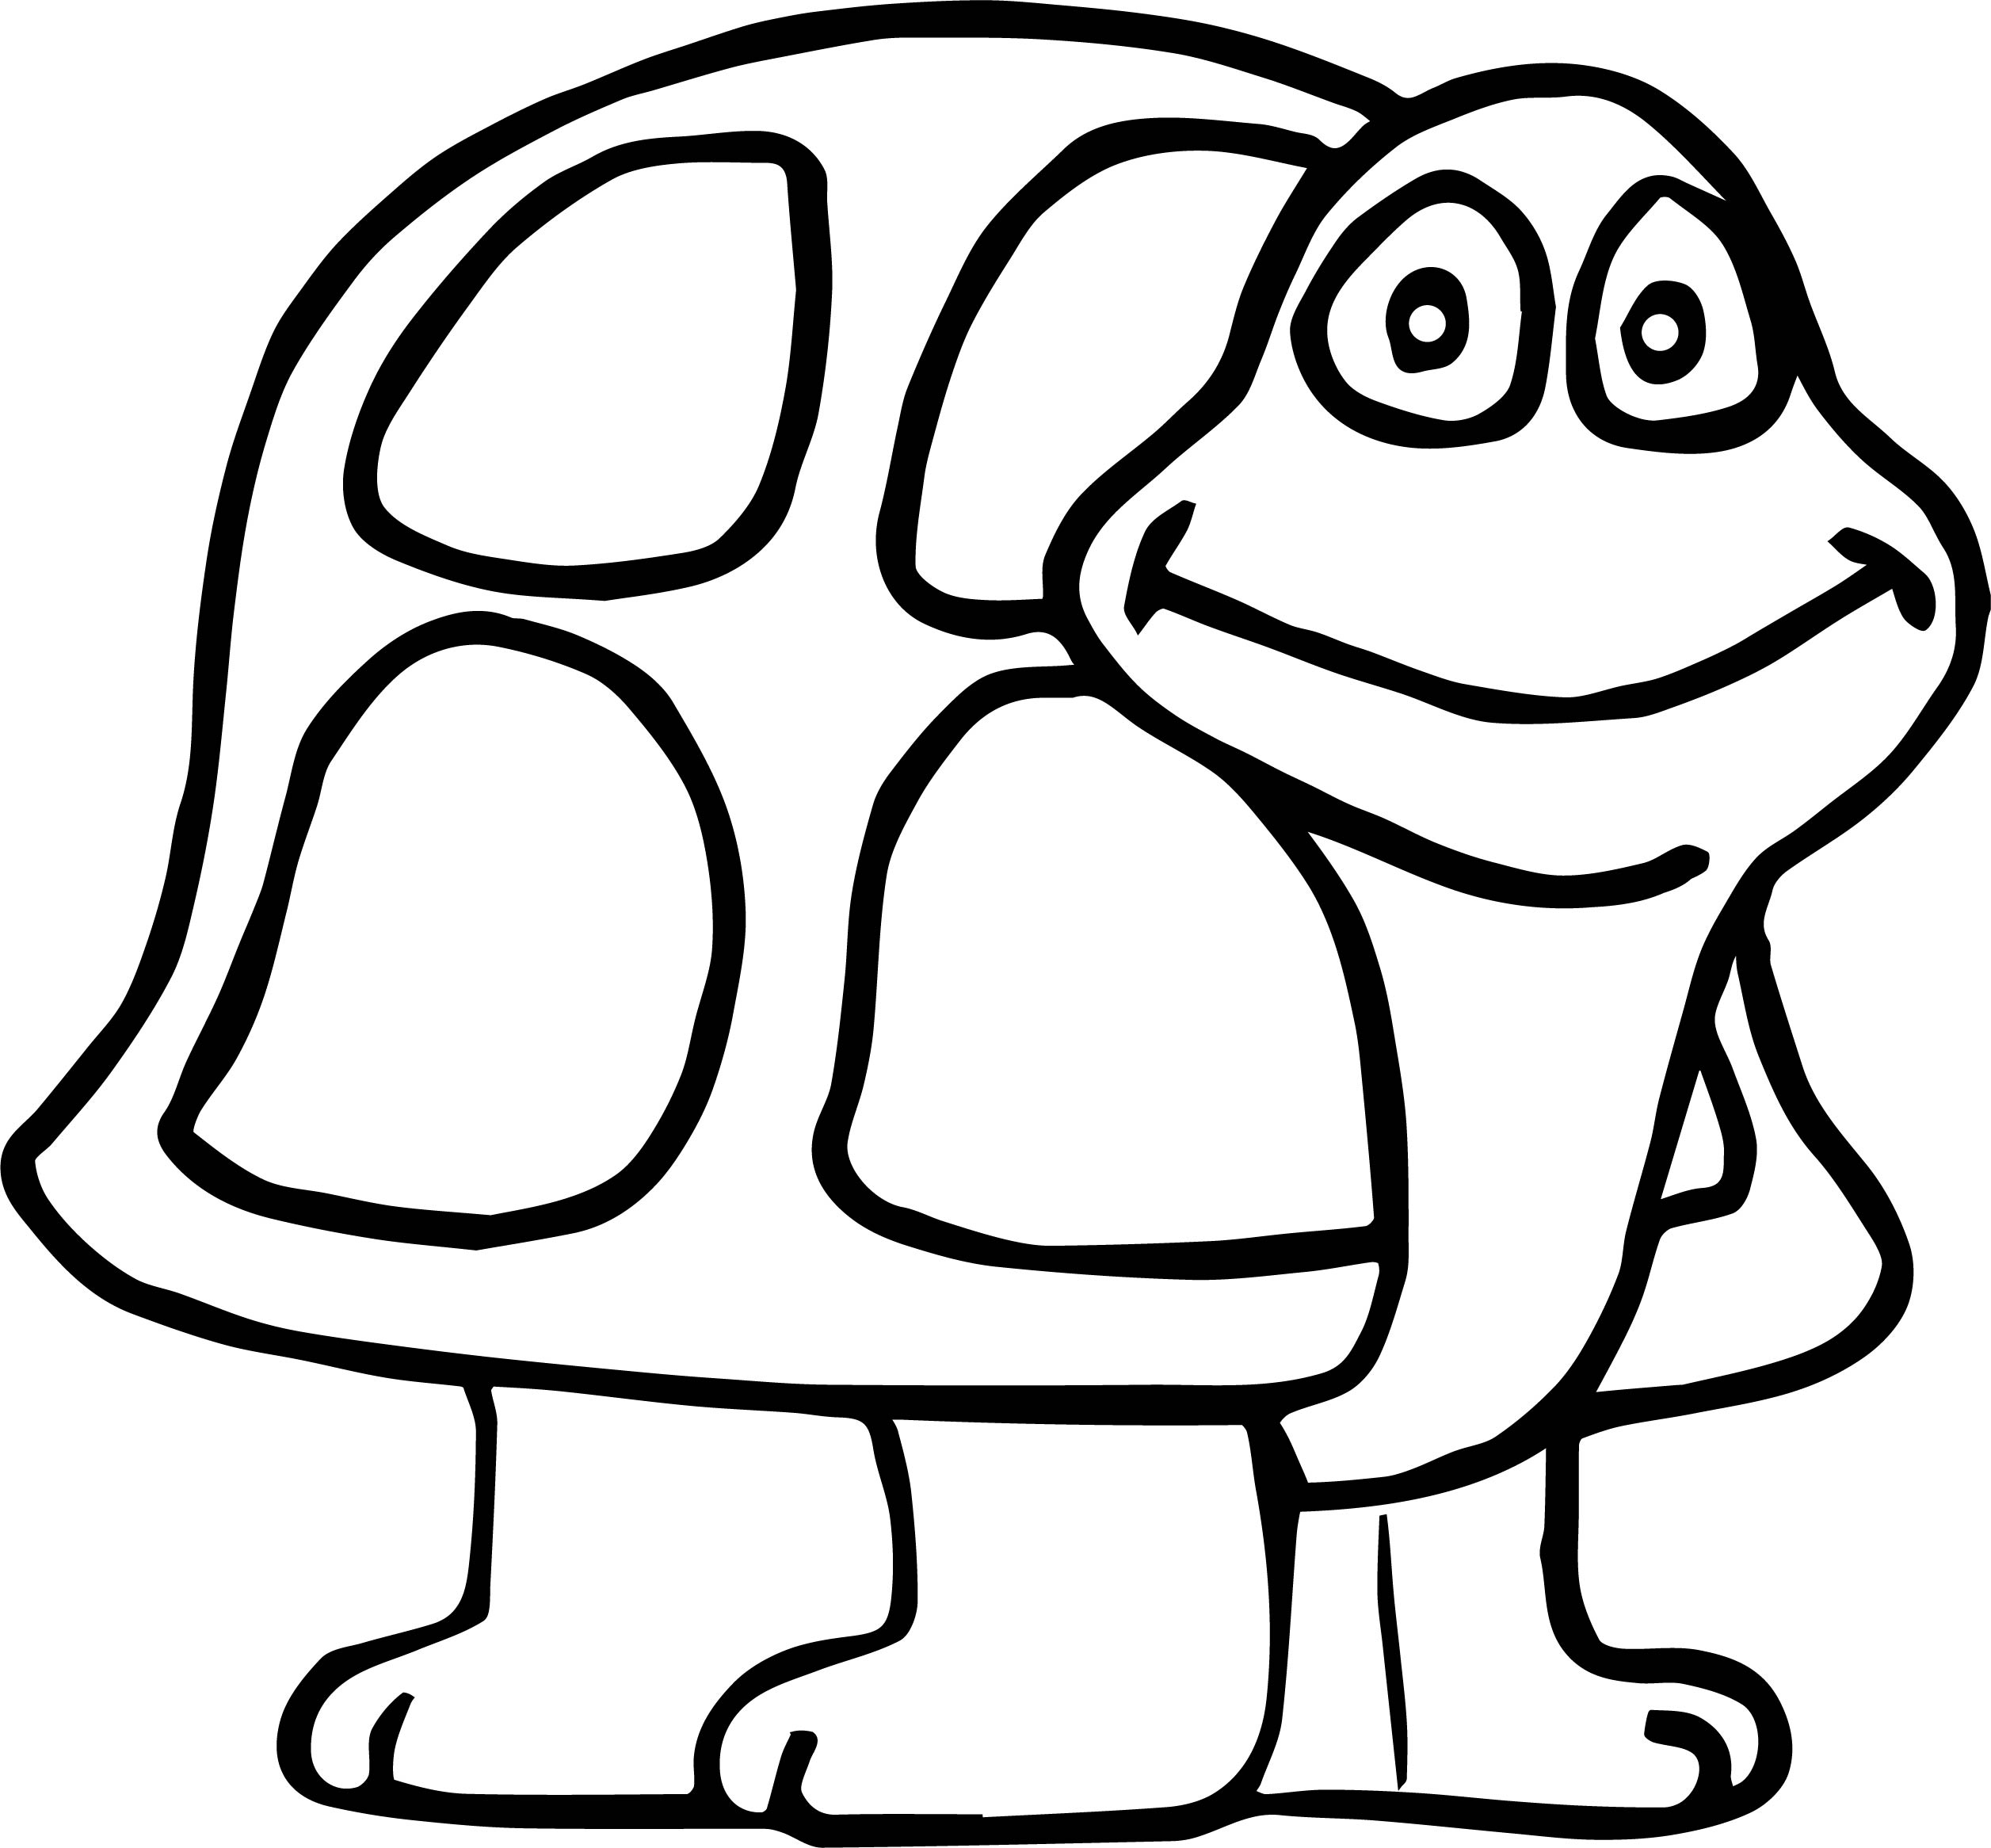 Tortoise Turtle Shell Coloring Page